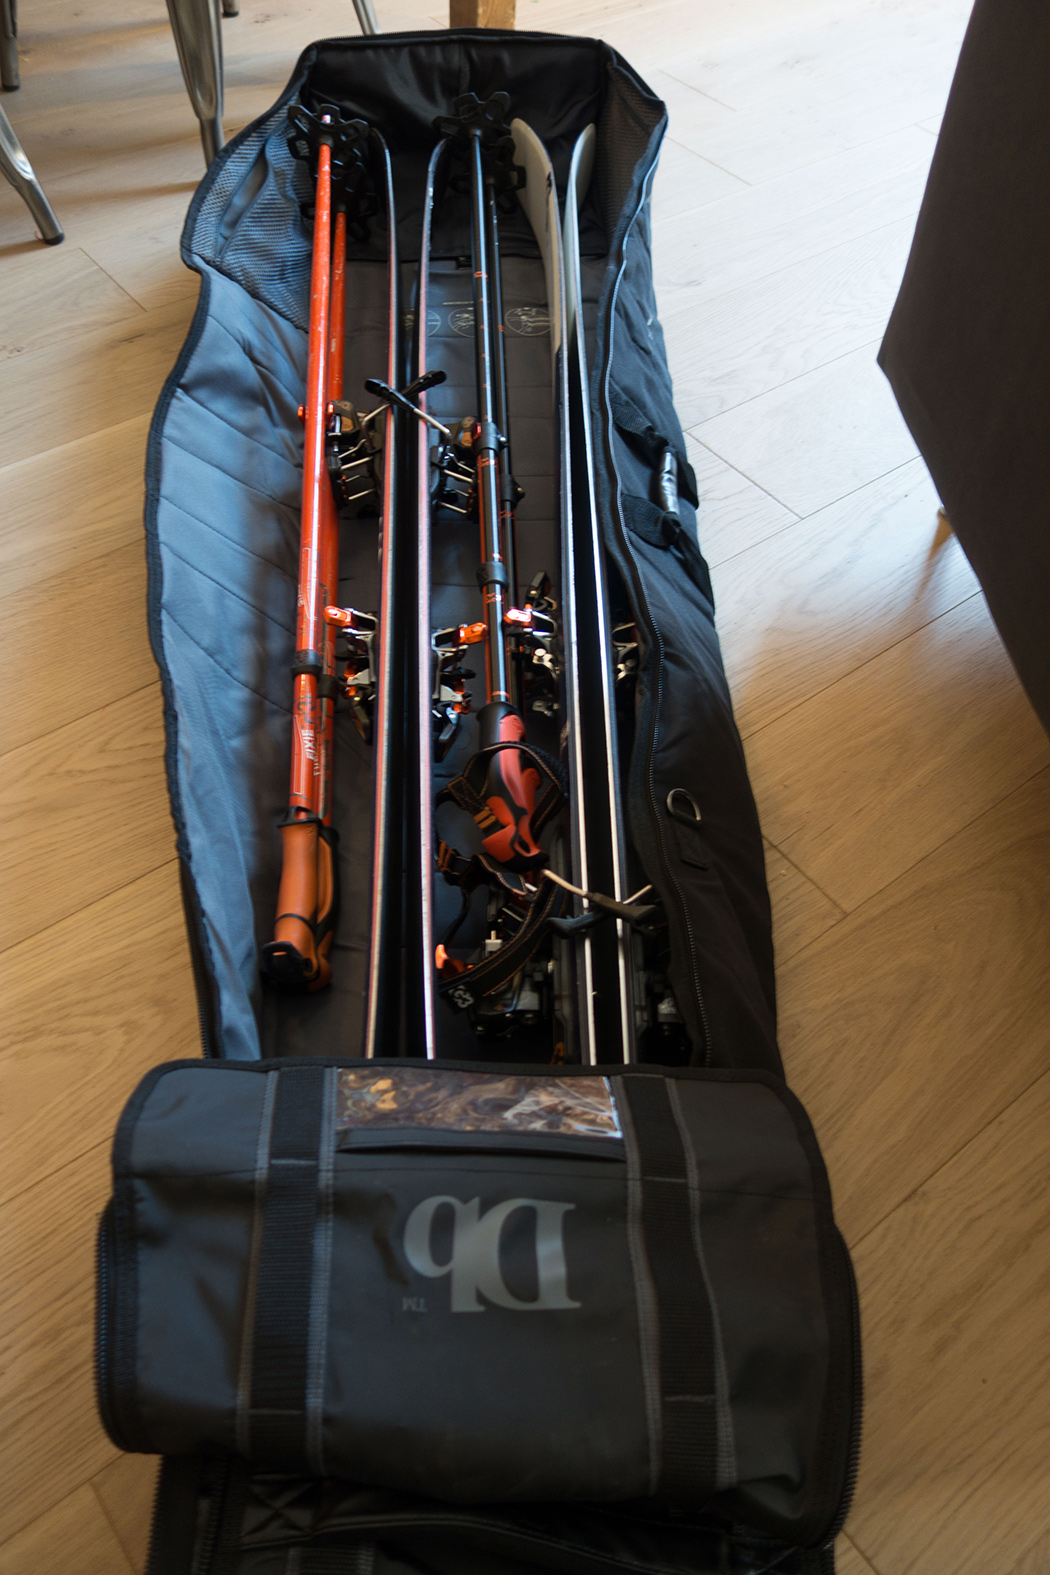 Loaded with 2 pairs of skis and poles.